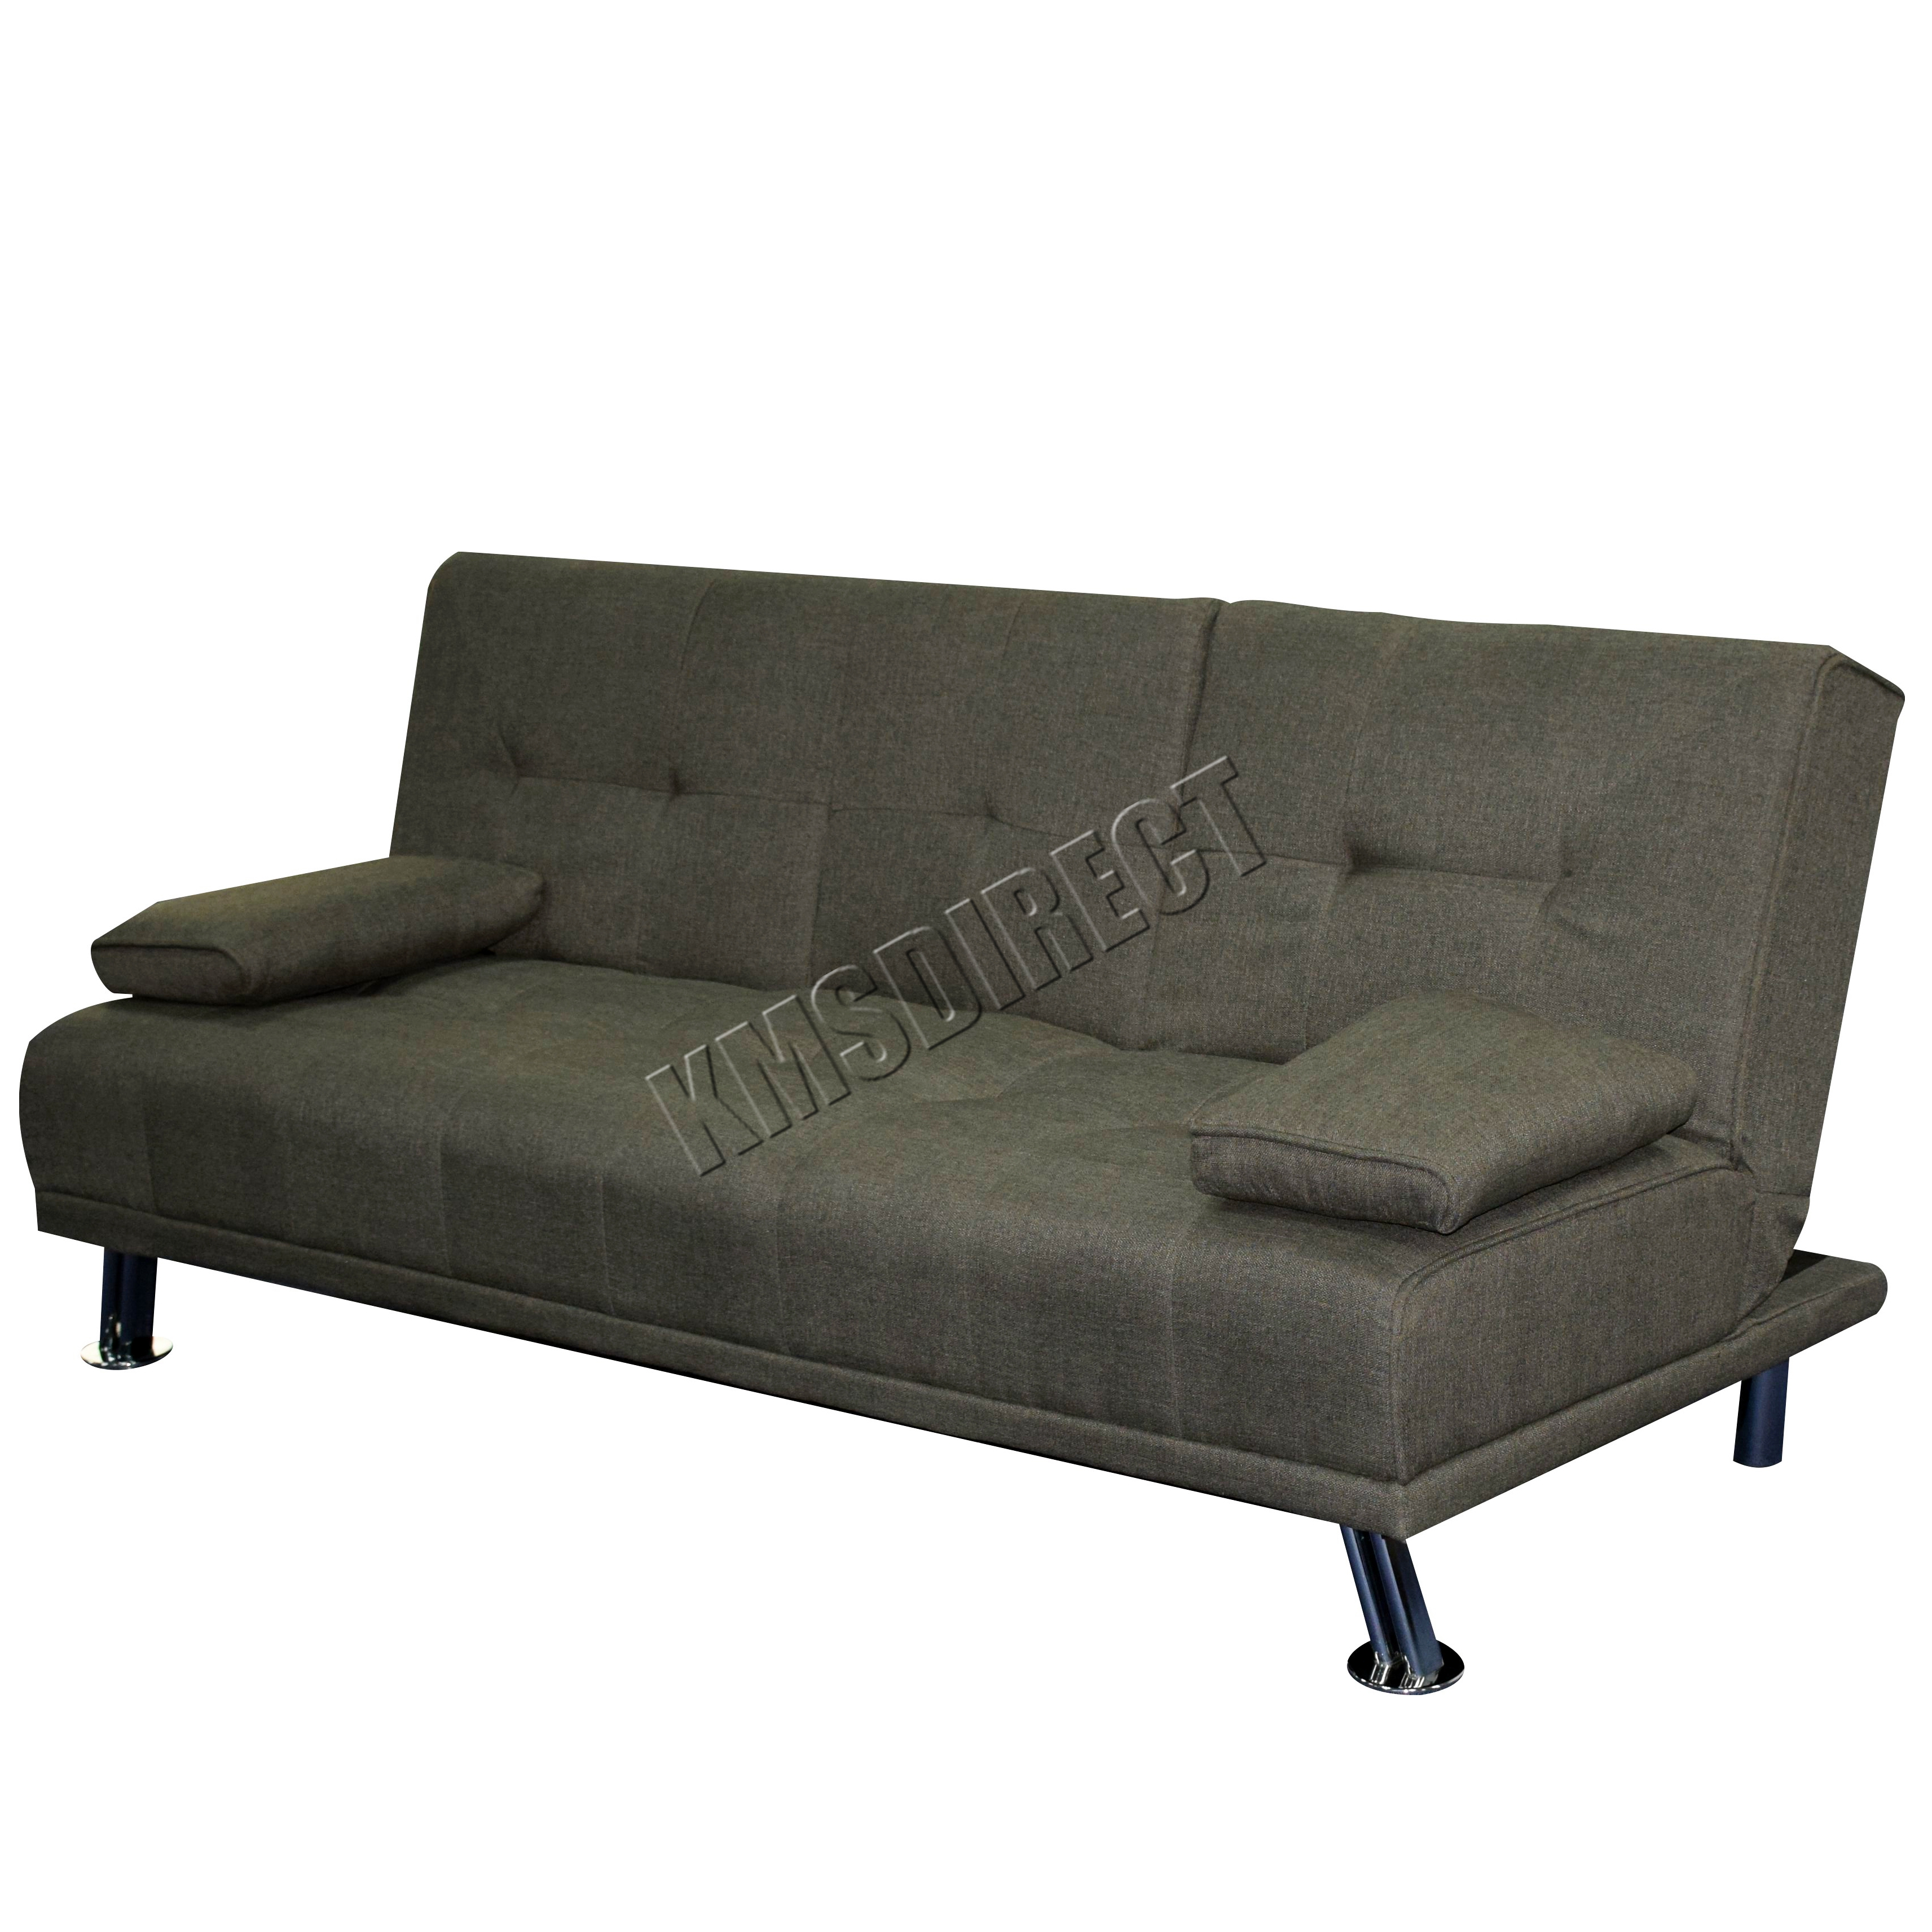 next day sofas customer reviews crate and barrel davis leather sofa foxhunter fabric manhattan bed recliner 3 seater